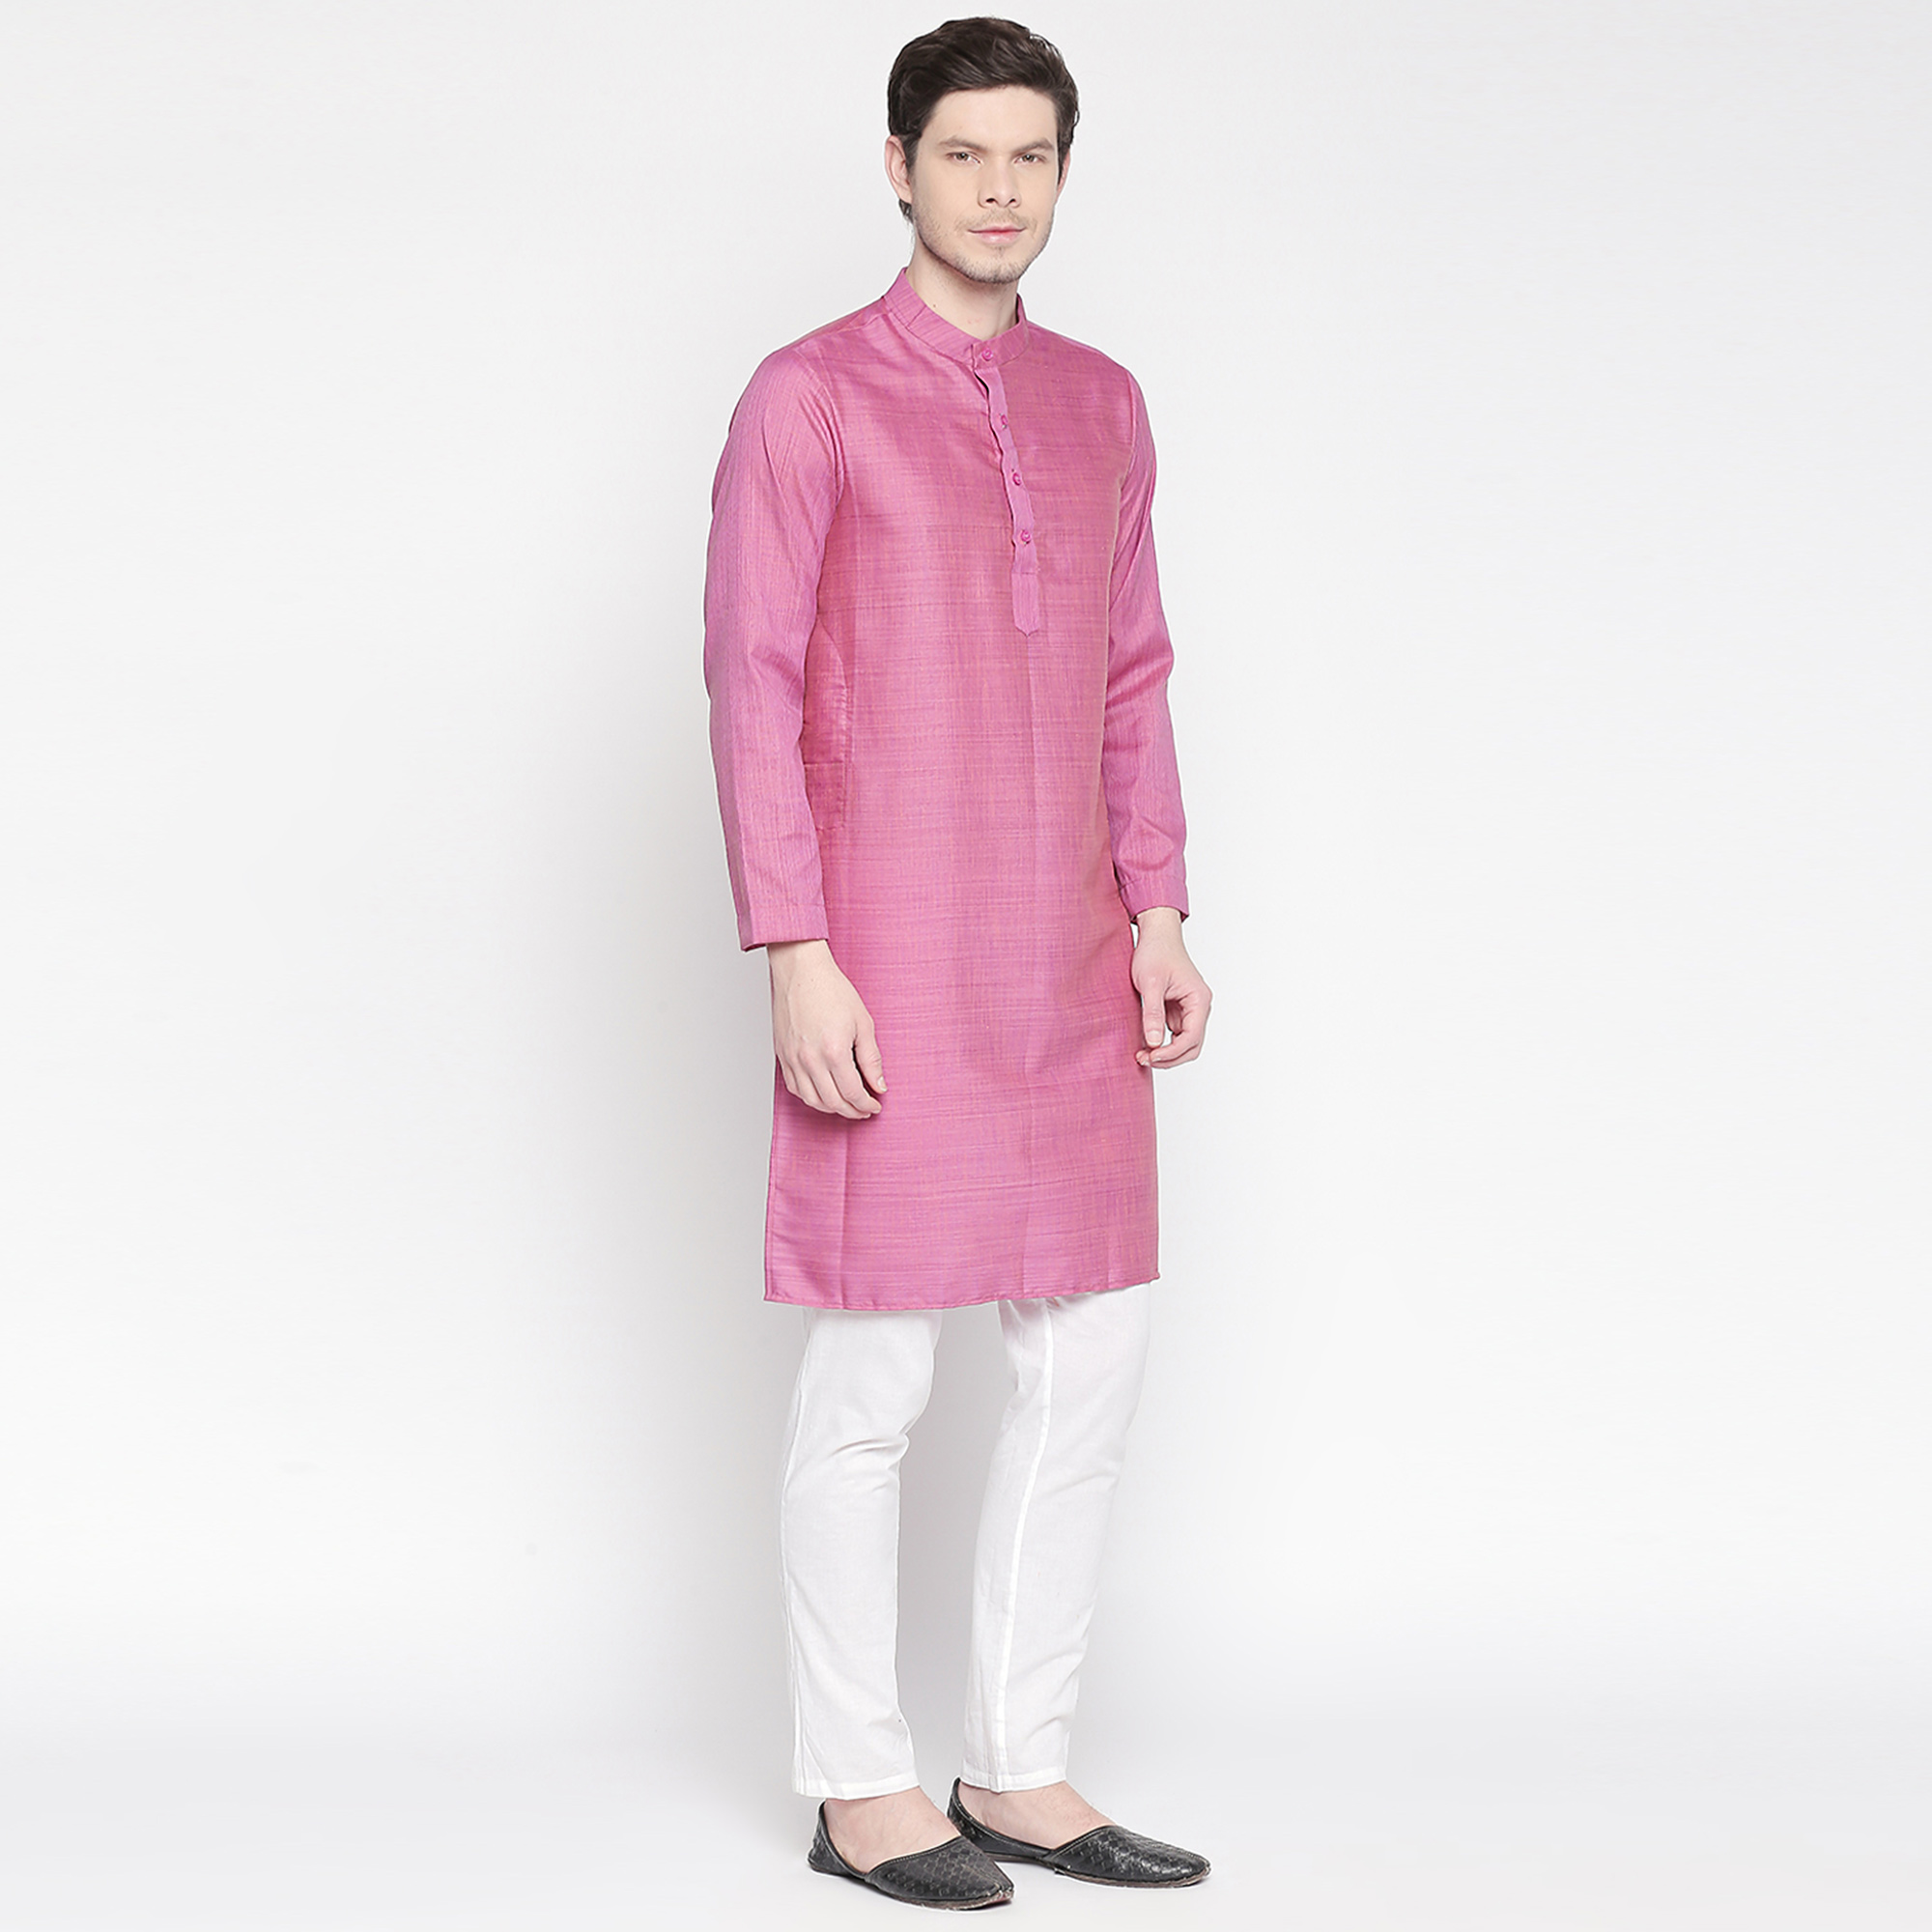 Appealing Magenta Pink Colored Festive Wear Cotton Long Kurta